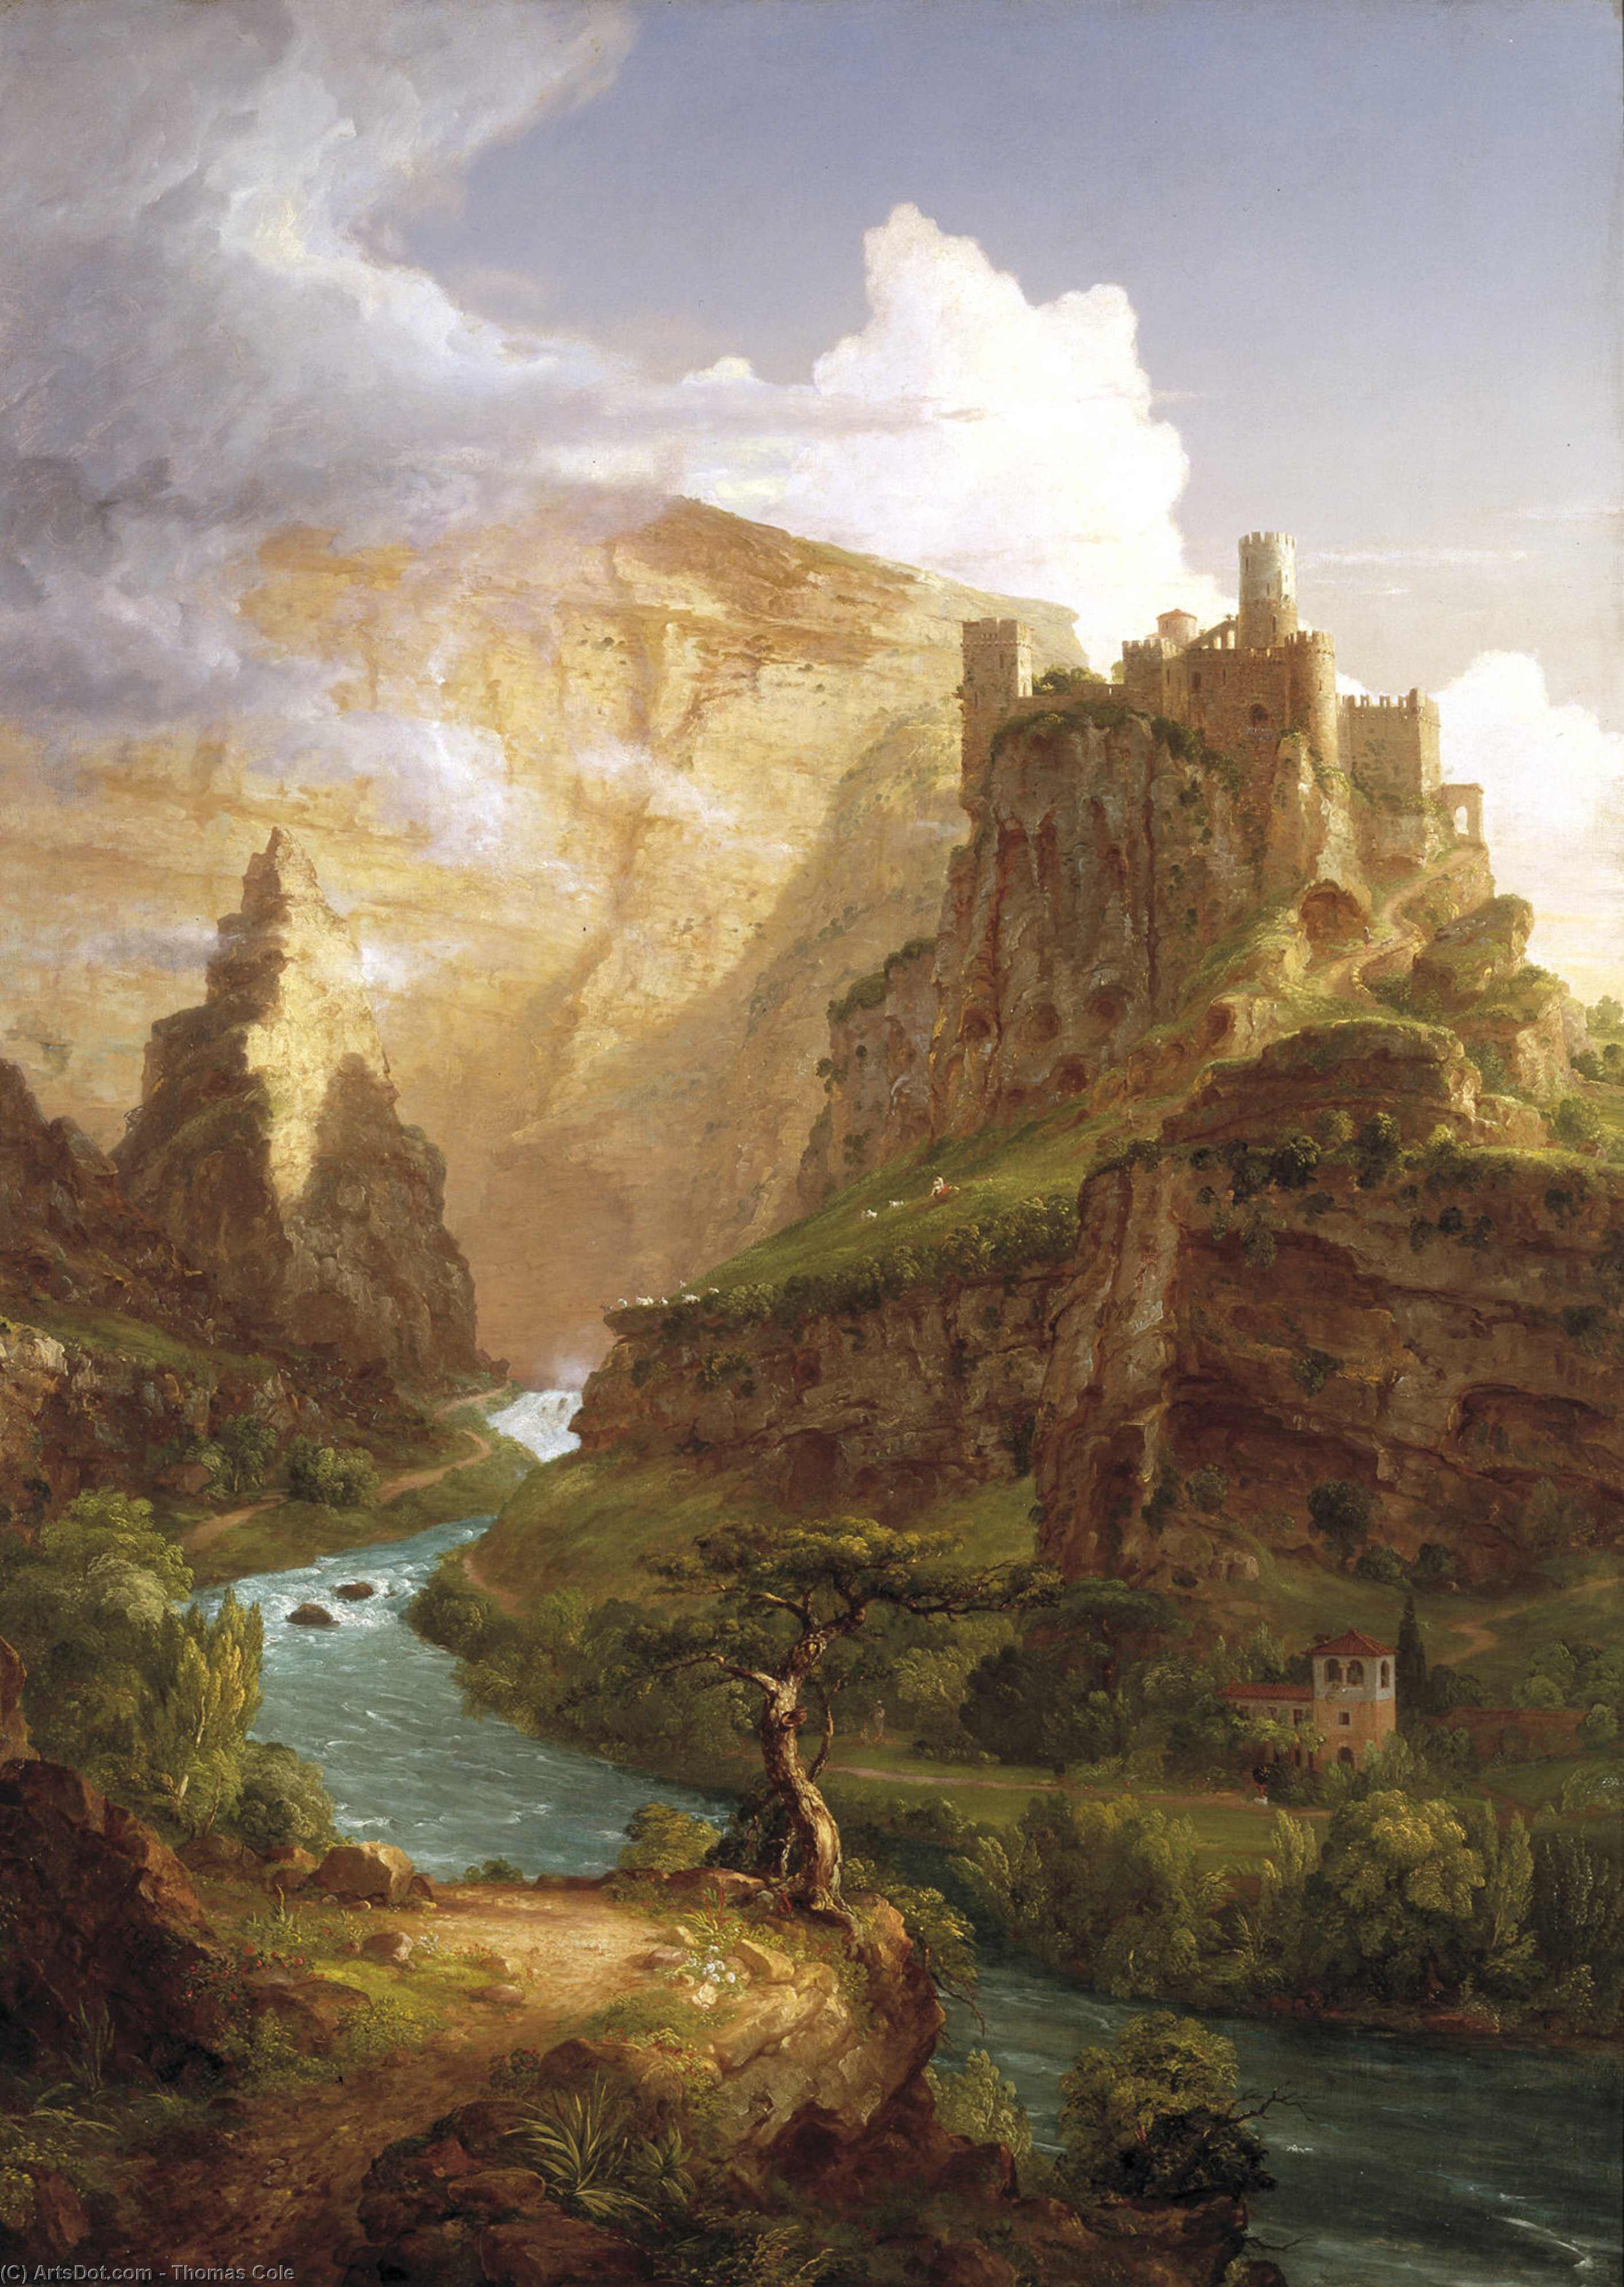 la fuente de vaucluse, 1841 de Thomas Cole (1801-1848, United Kingdom)